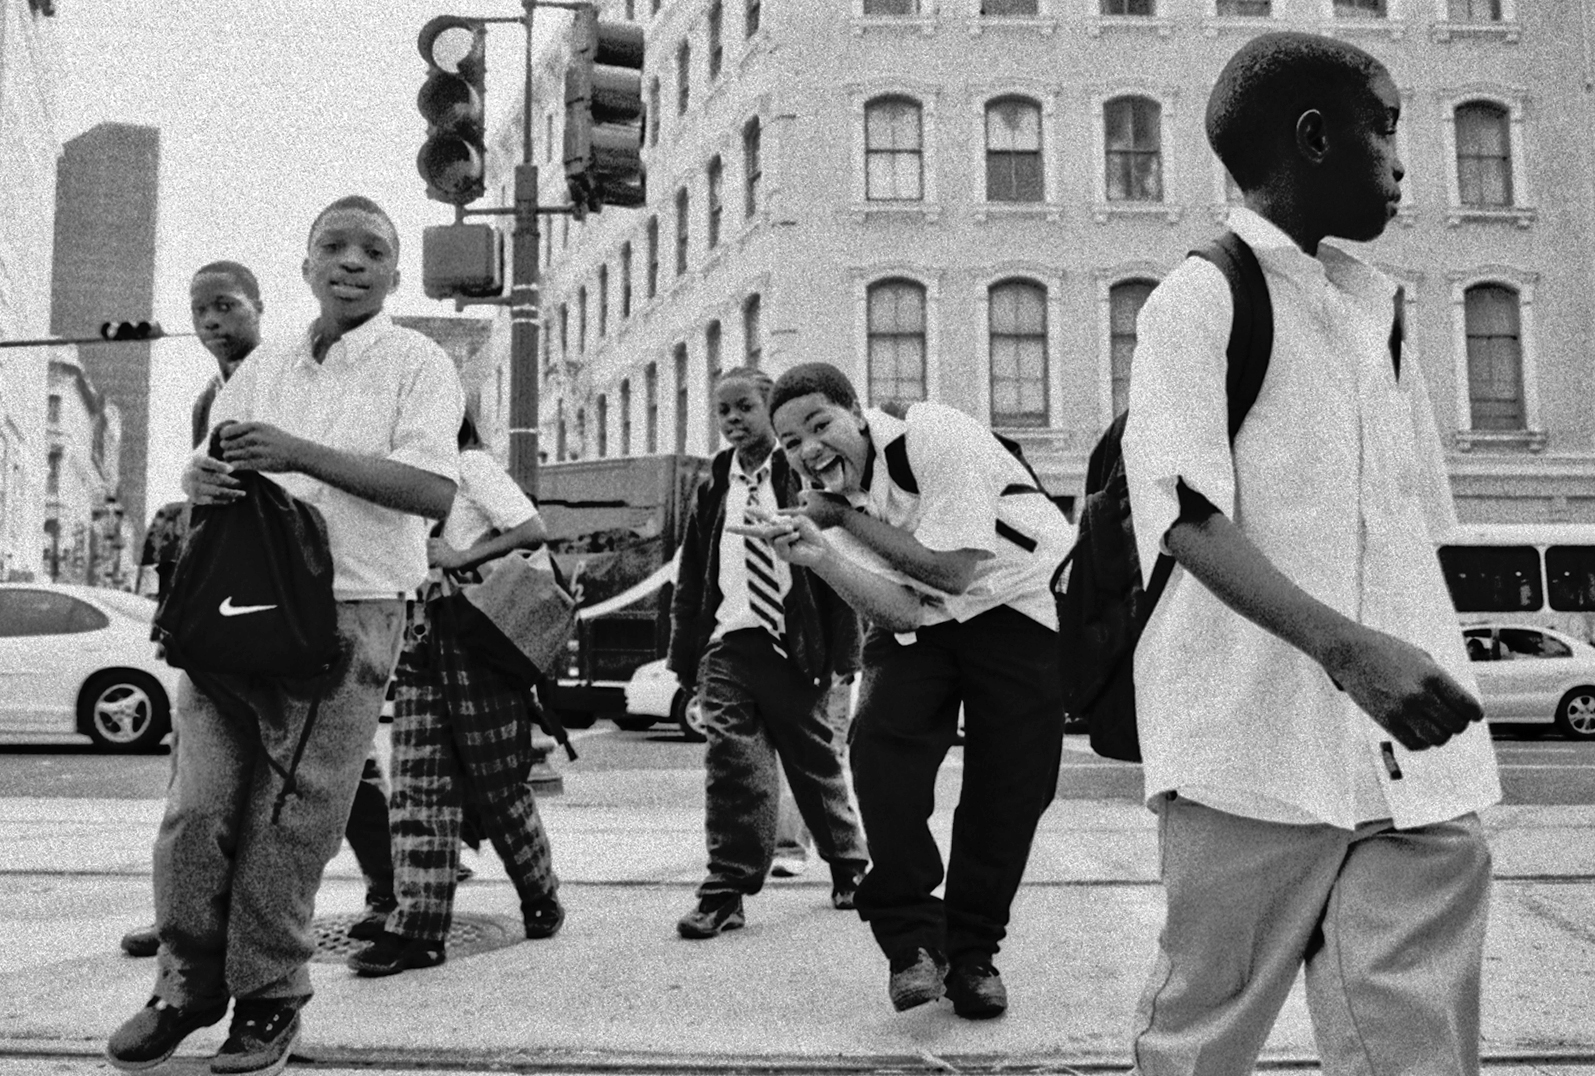 After School on Canal St., New Orleans